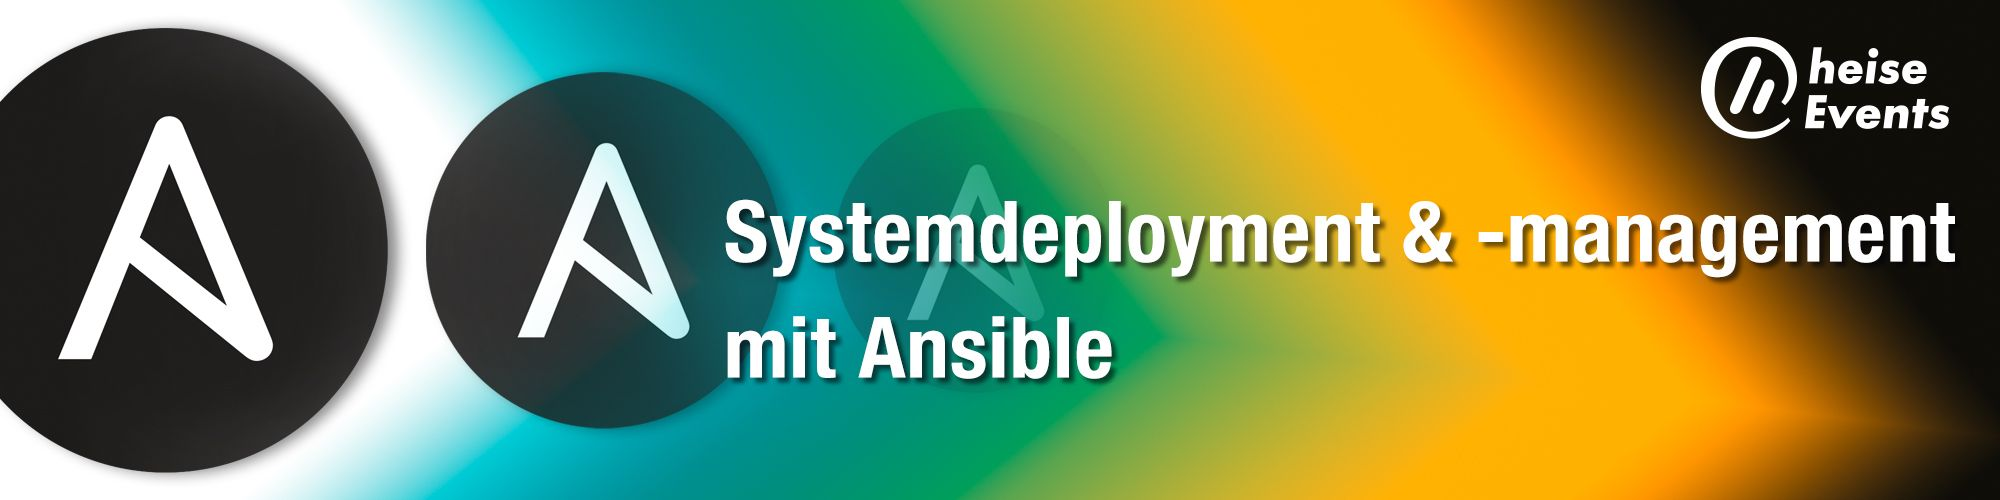 Systemdeployment & -management mit Ansible